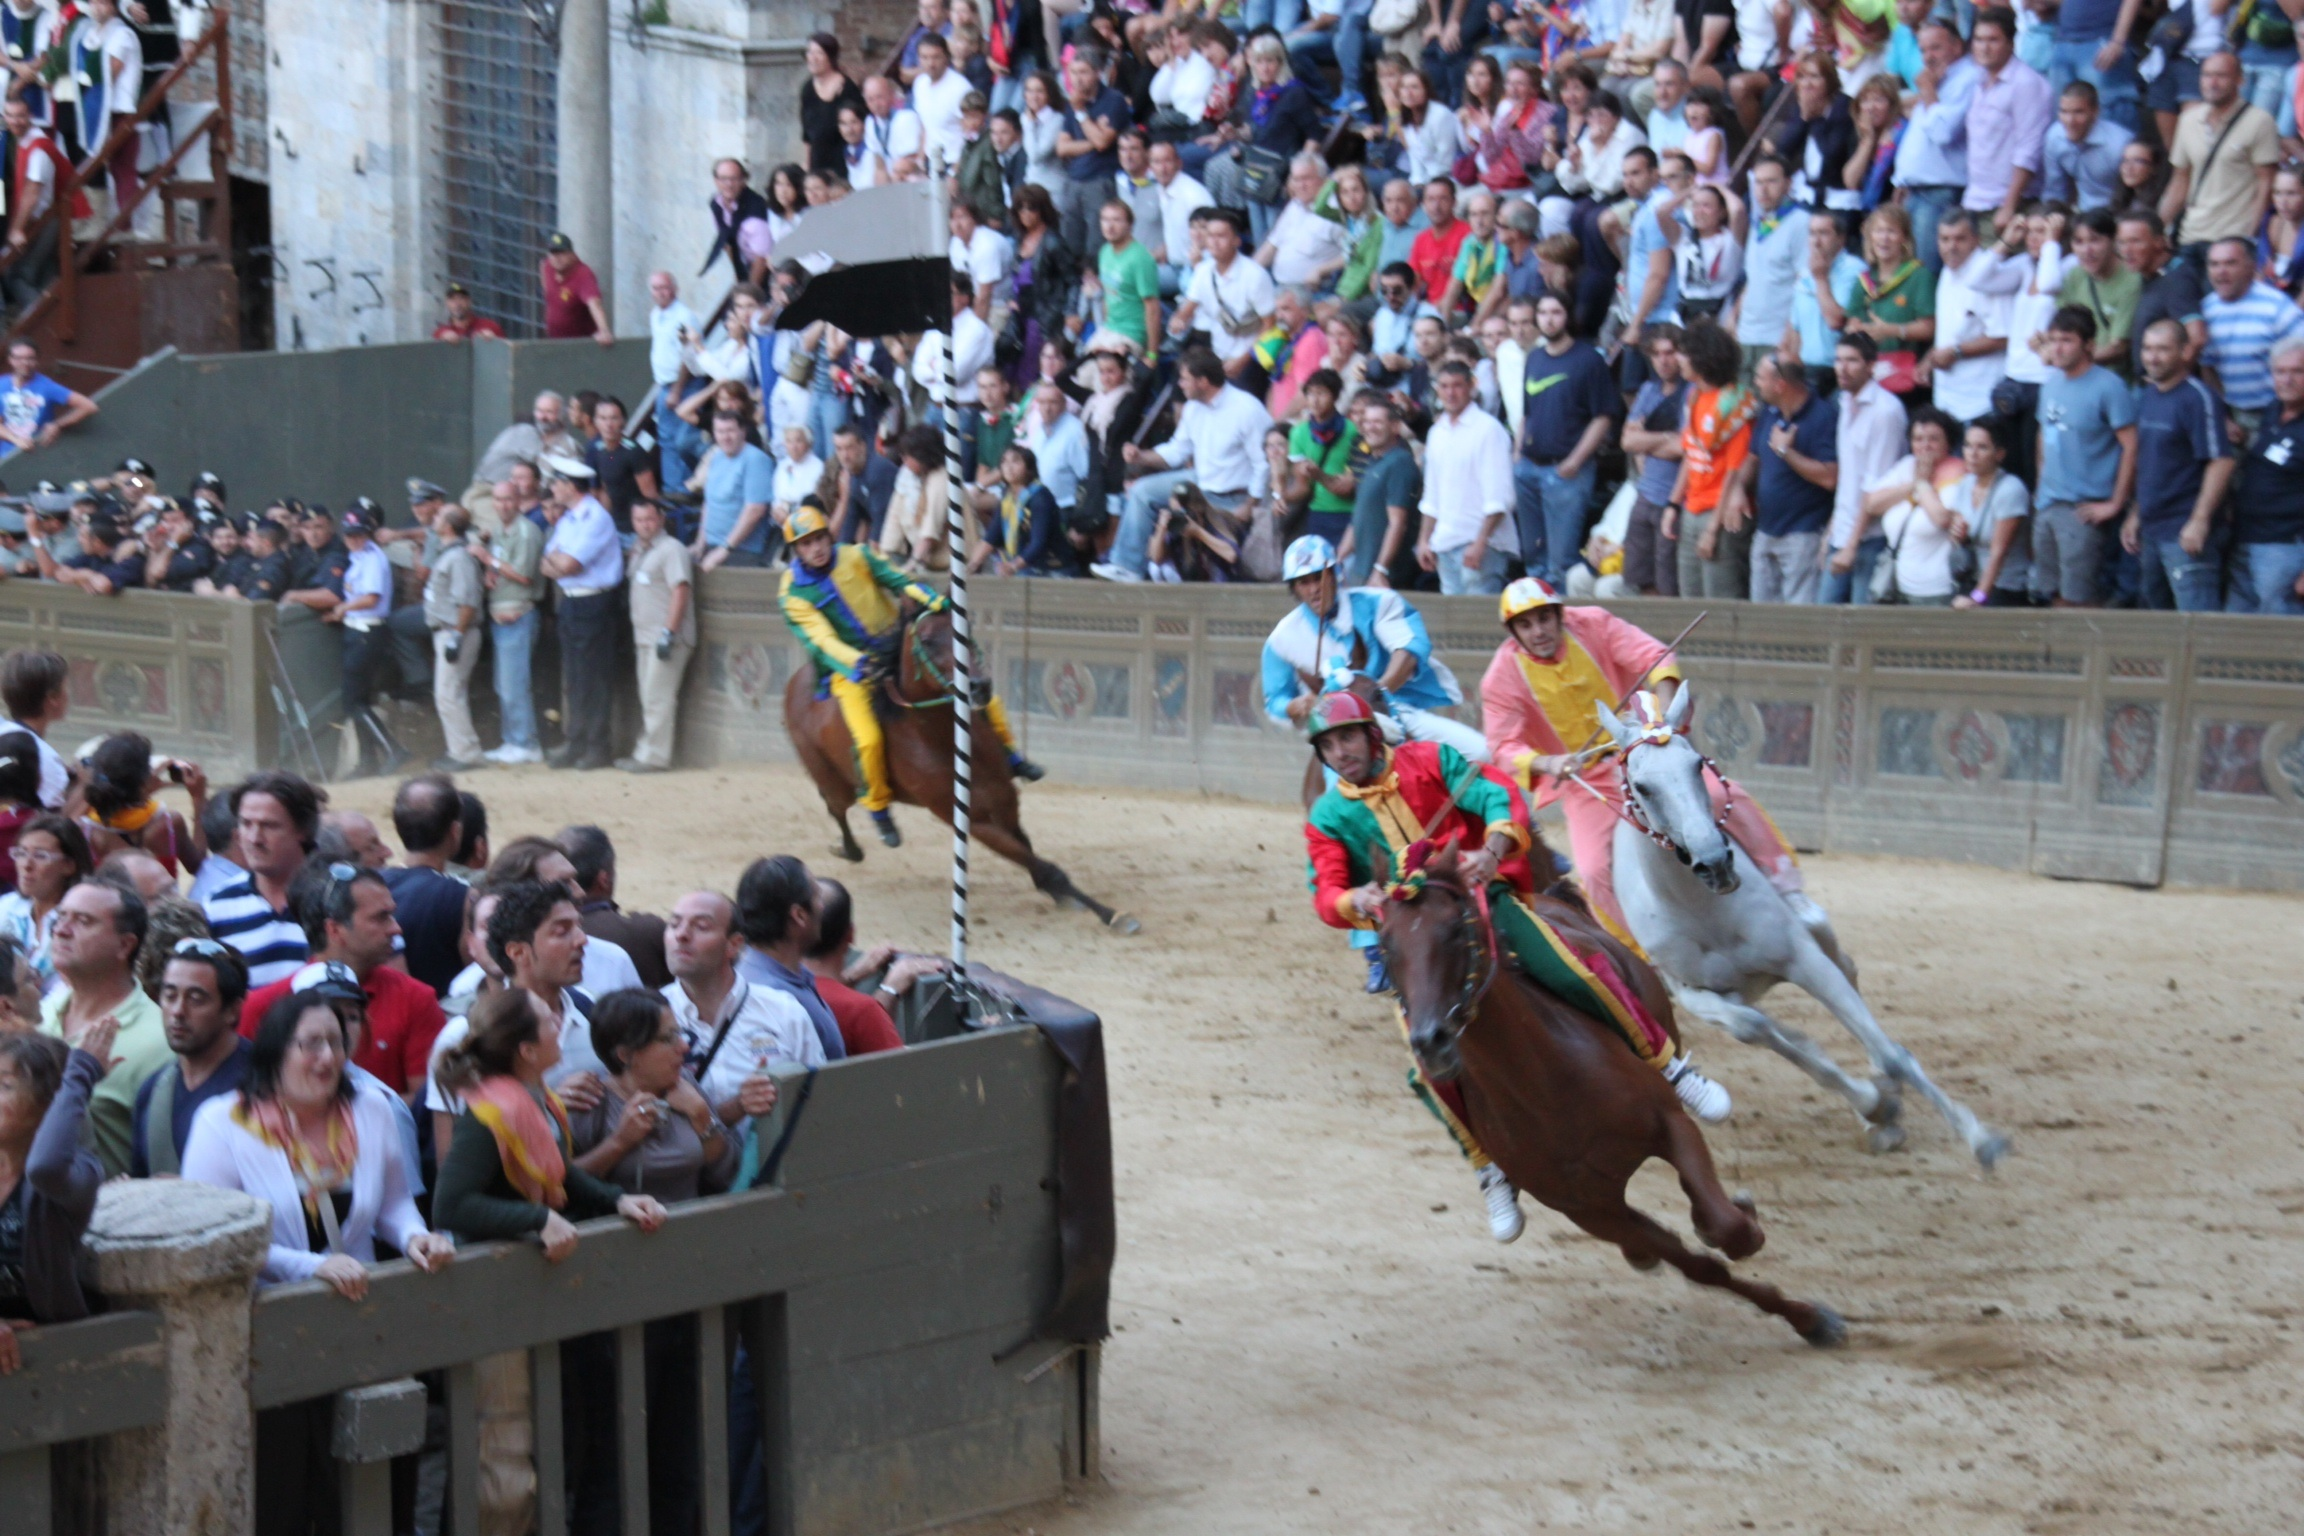 Horses racing in the Palio dell'Assunta, Siena 2010